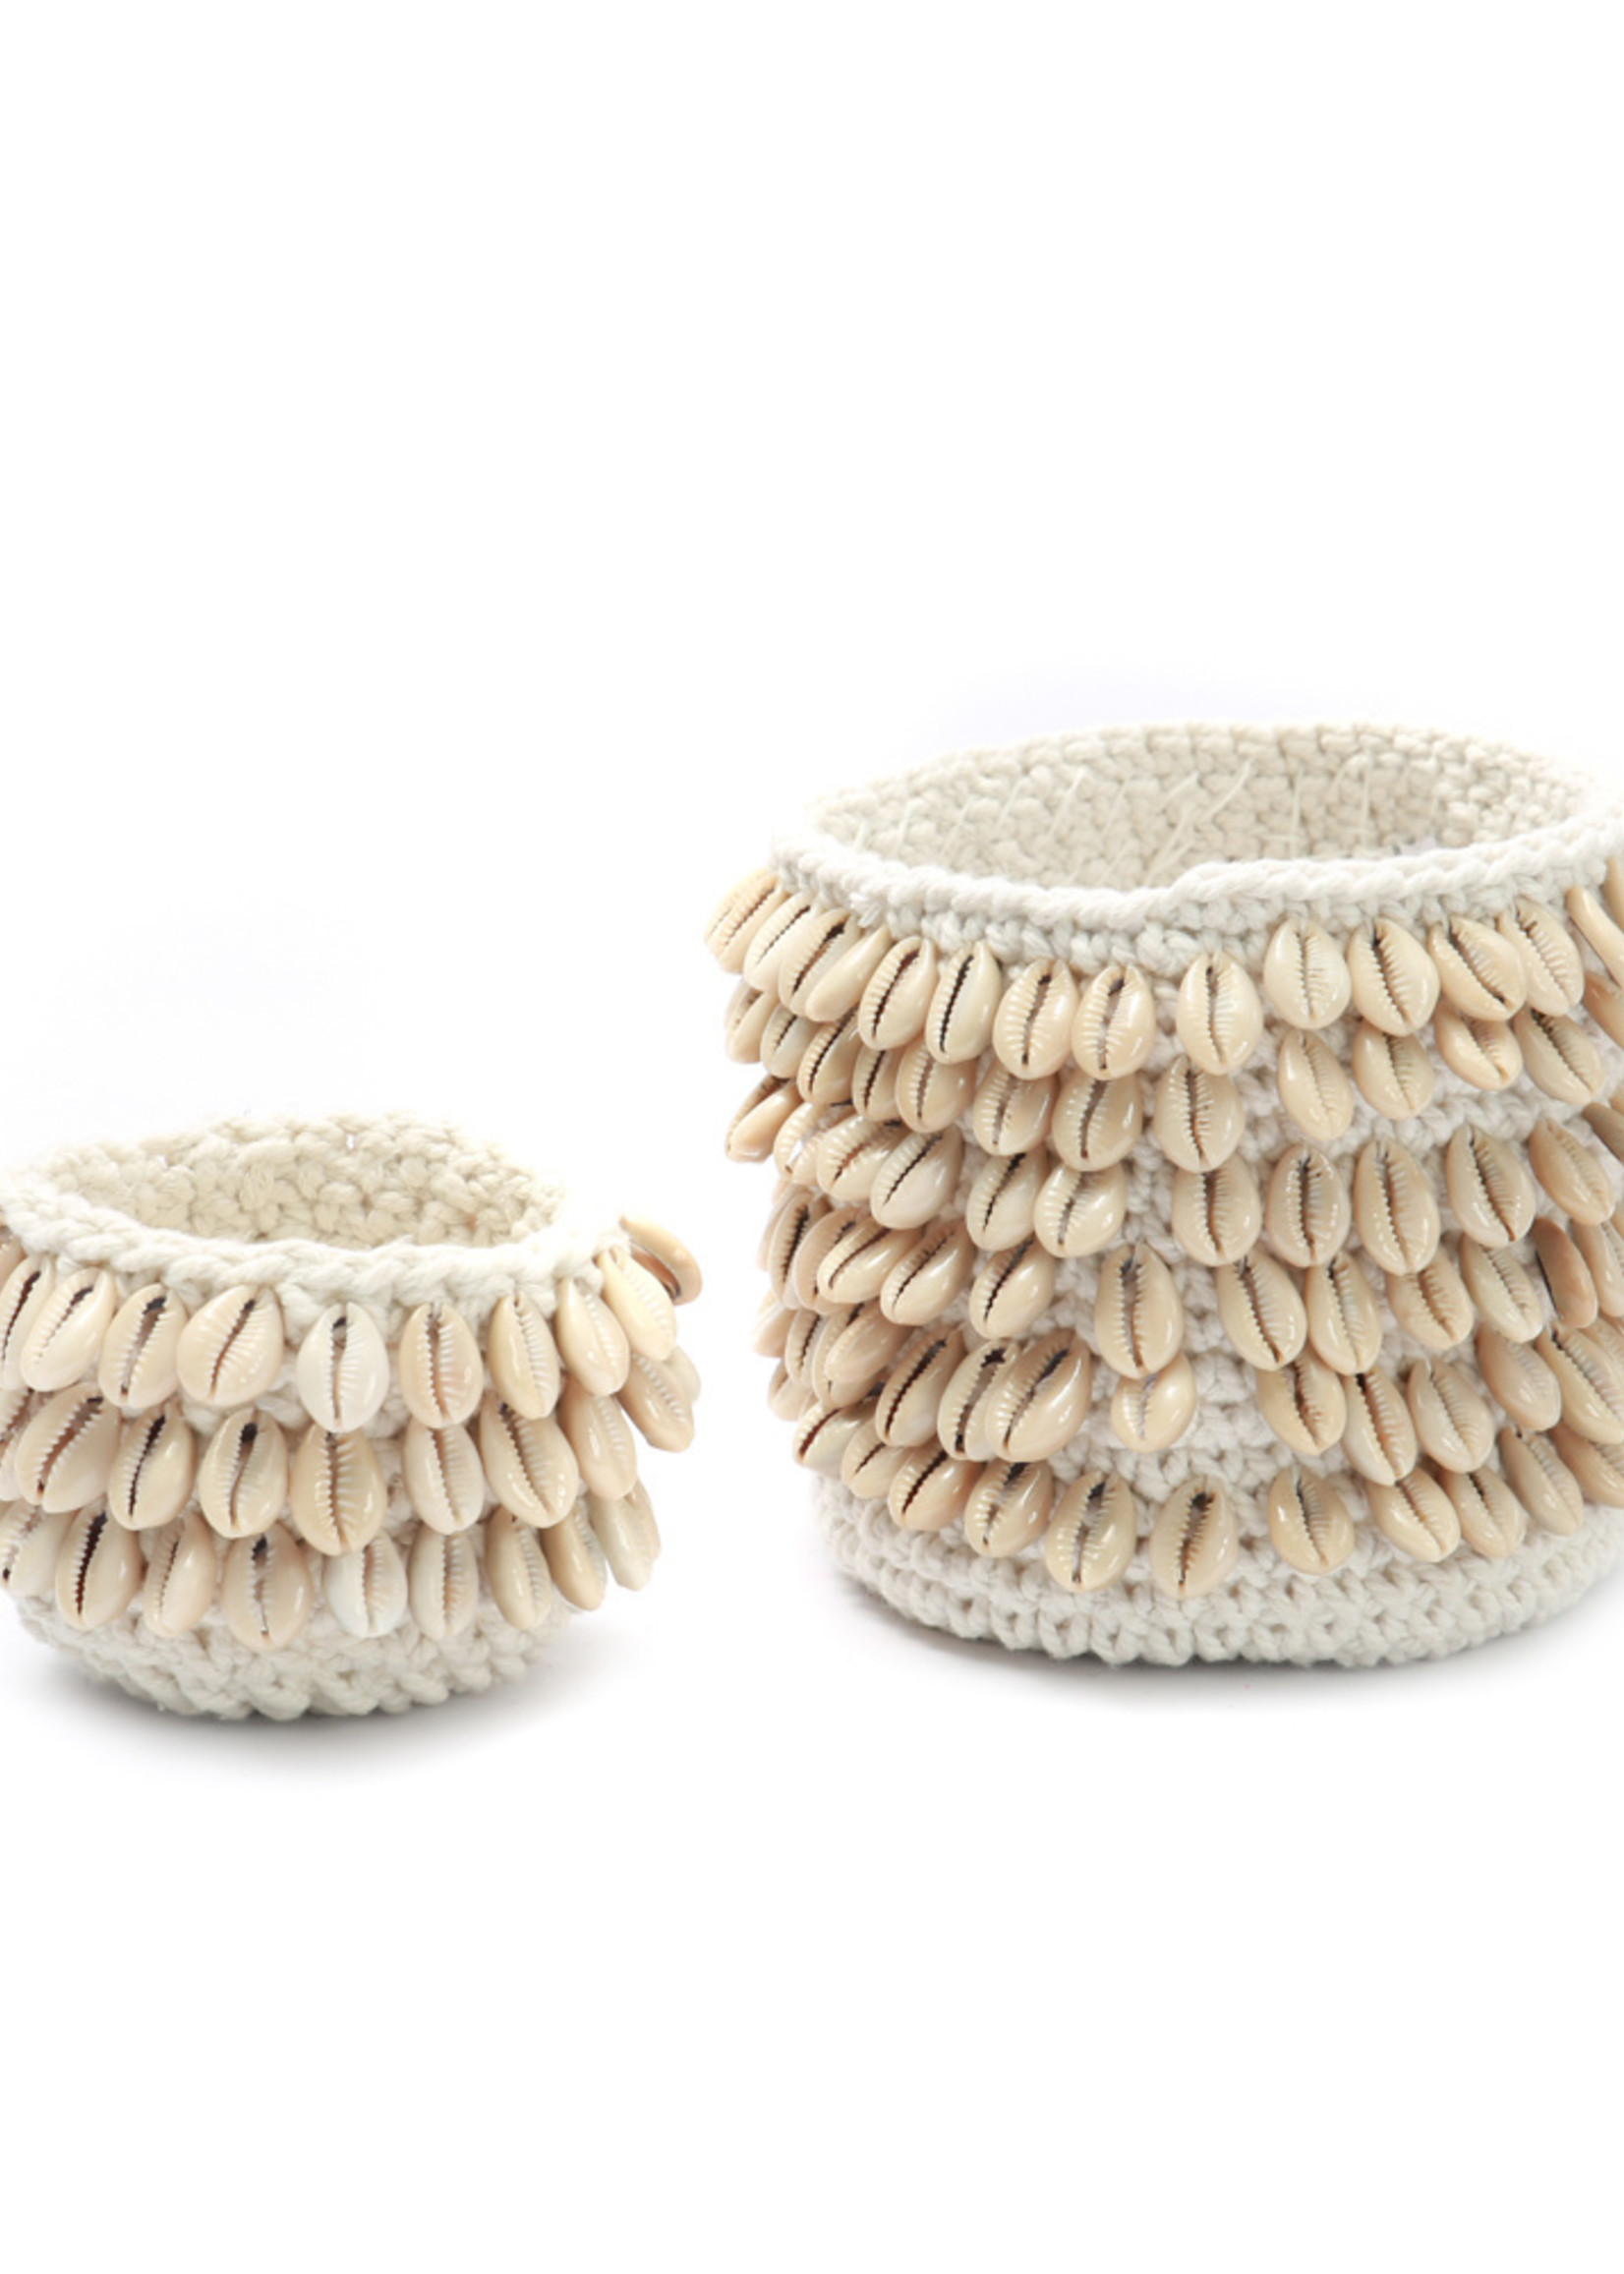 The Cowrie Macrame Candle Holder - Natural S